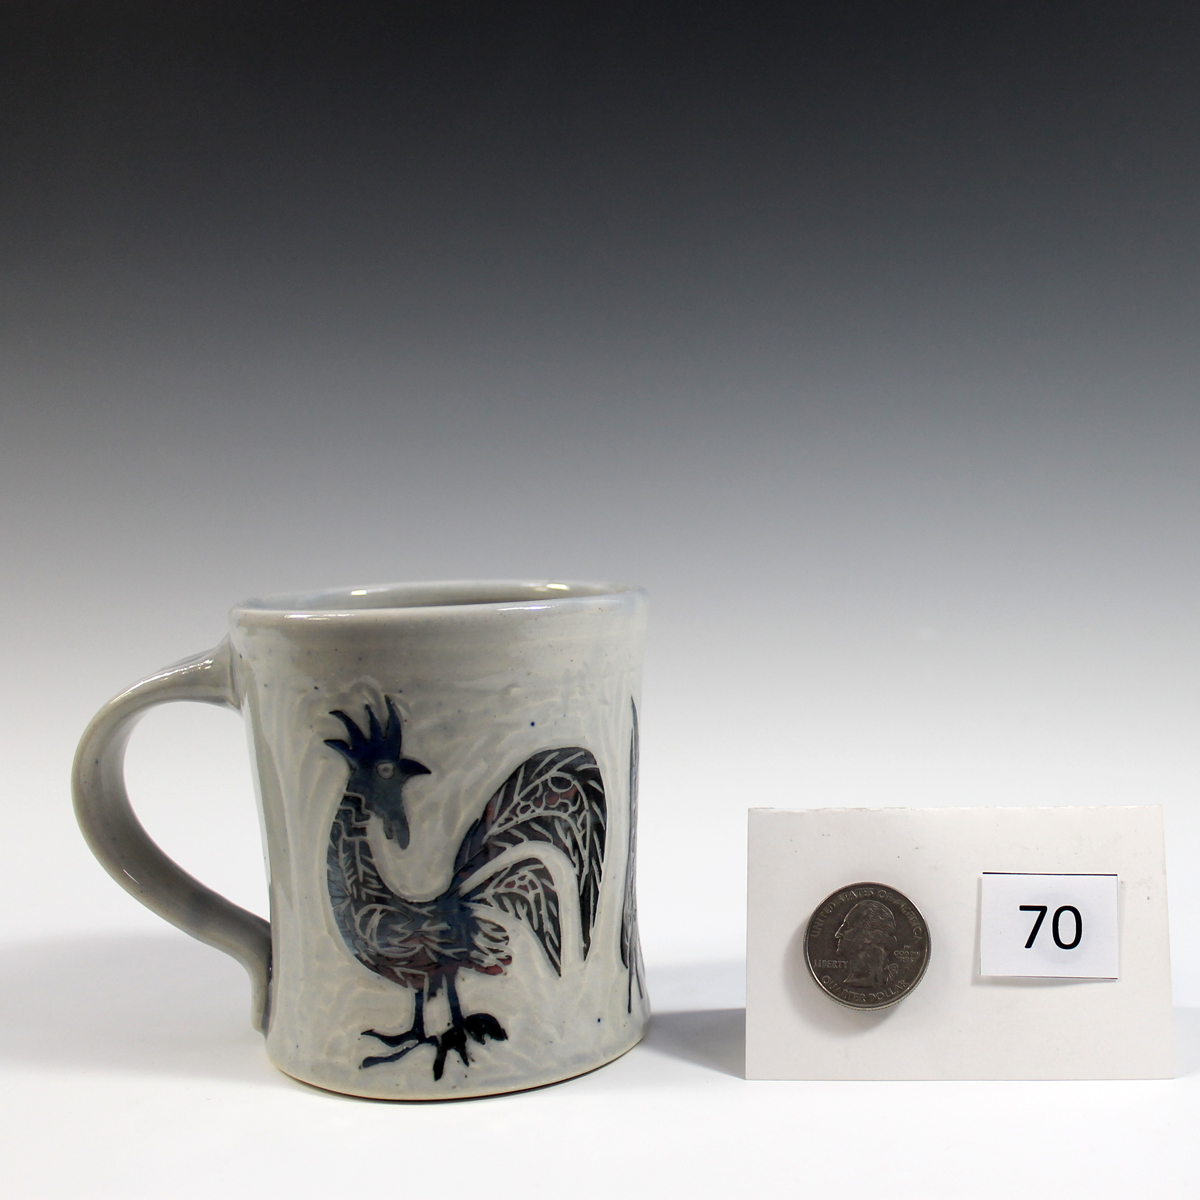 Neal Reed Rooster Mug #70